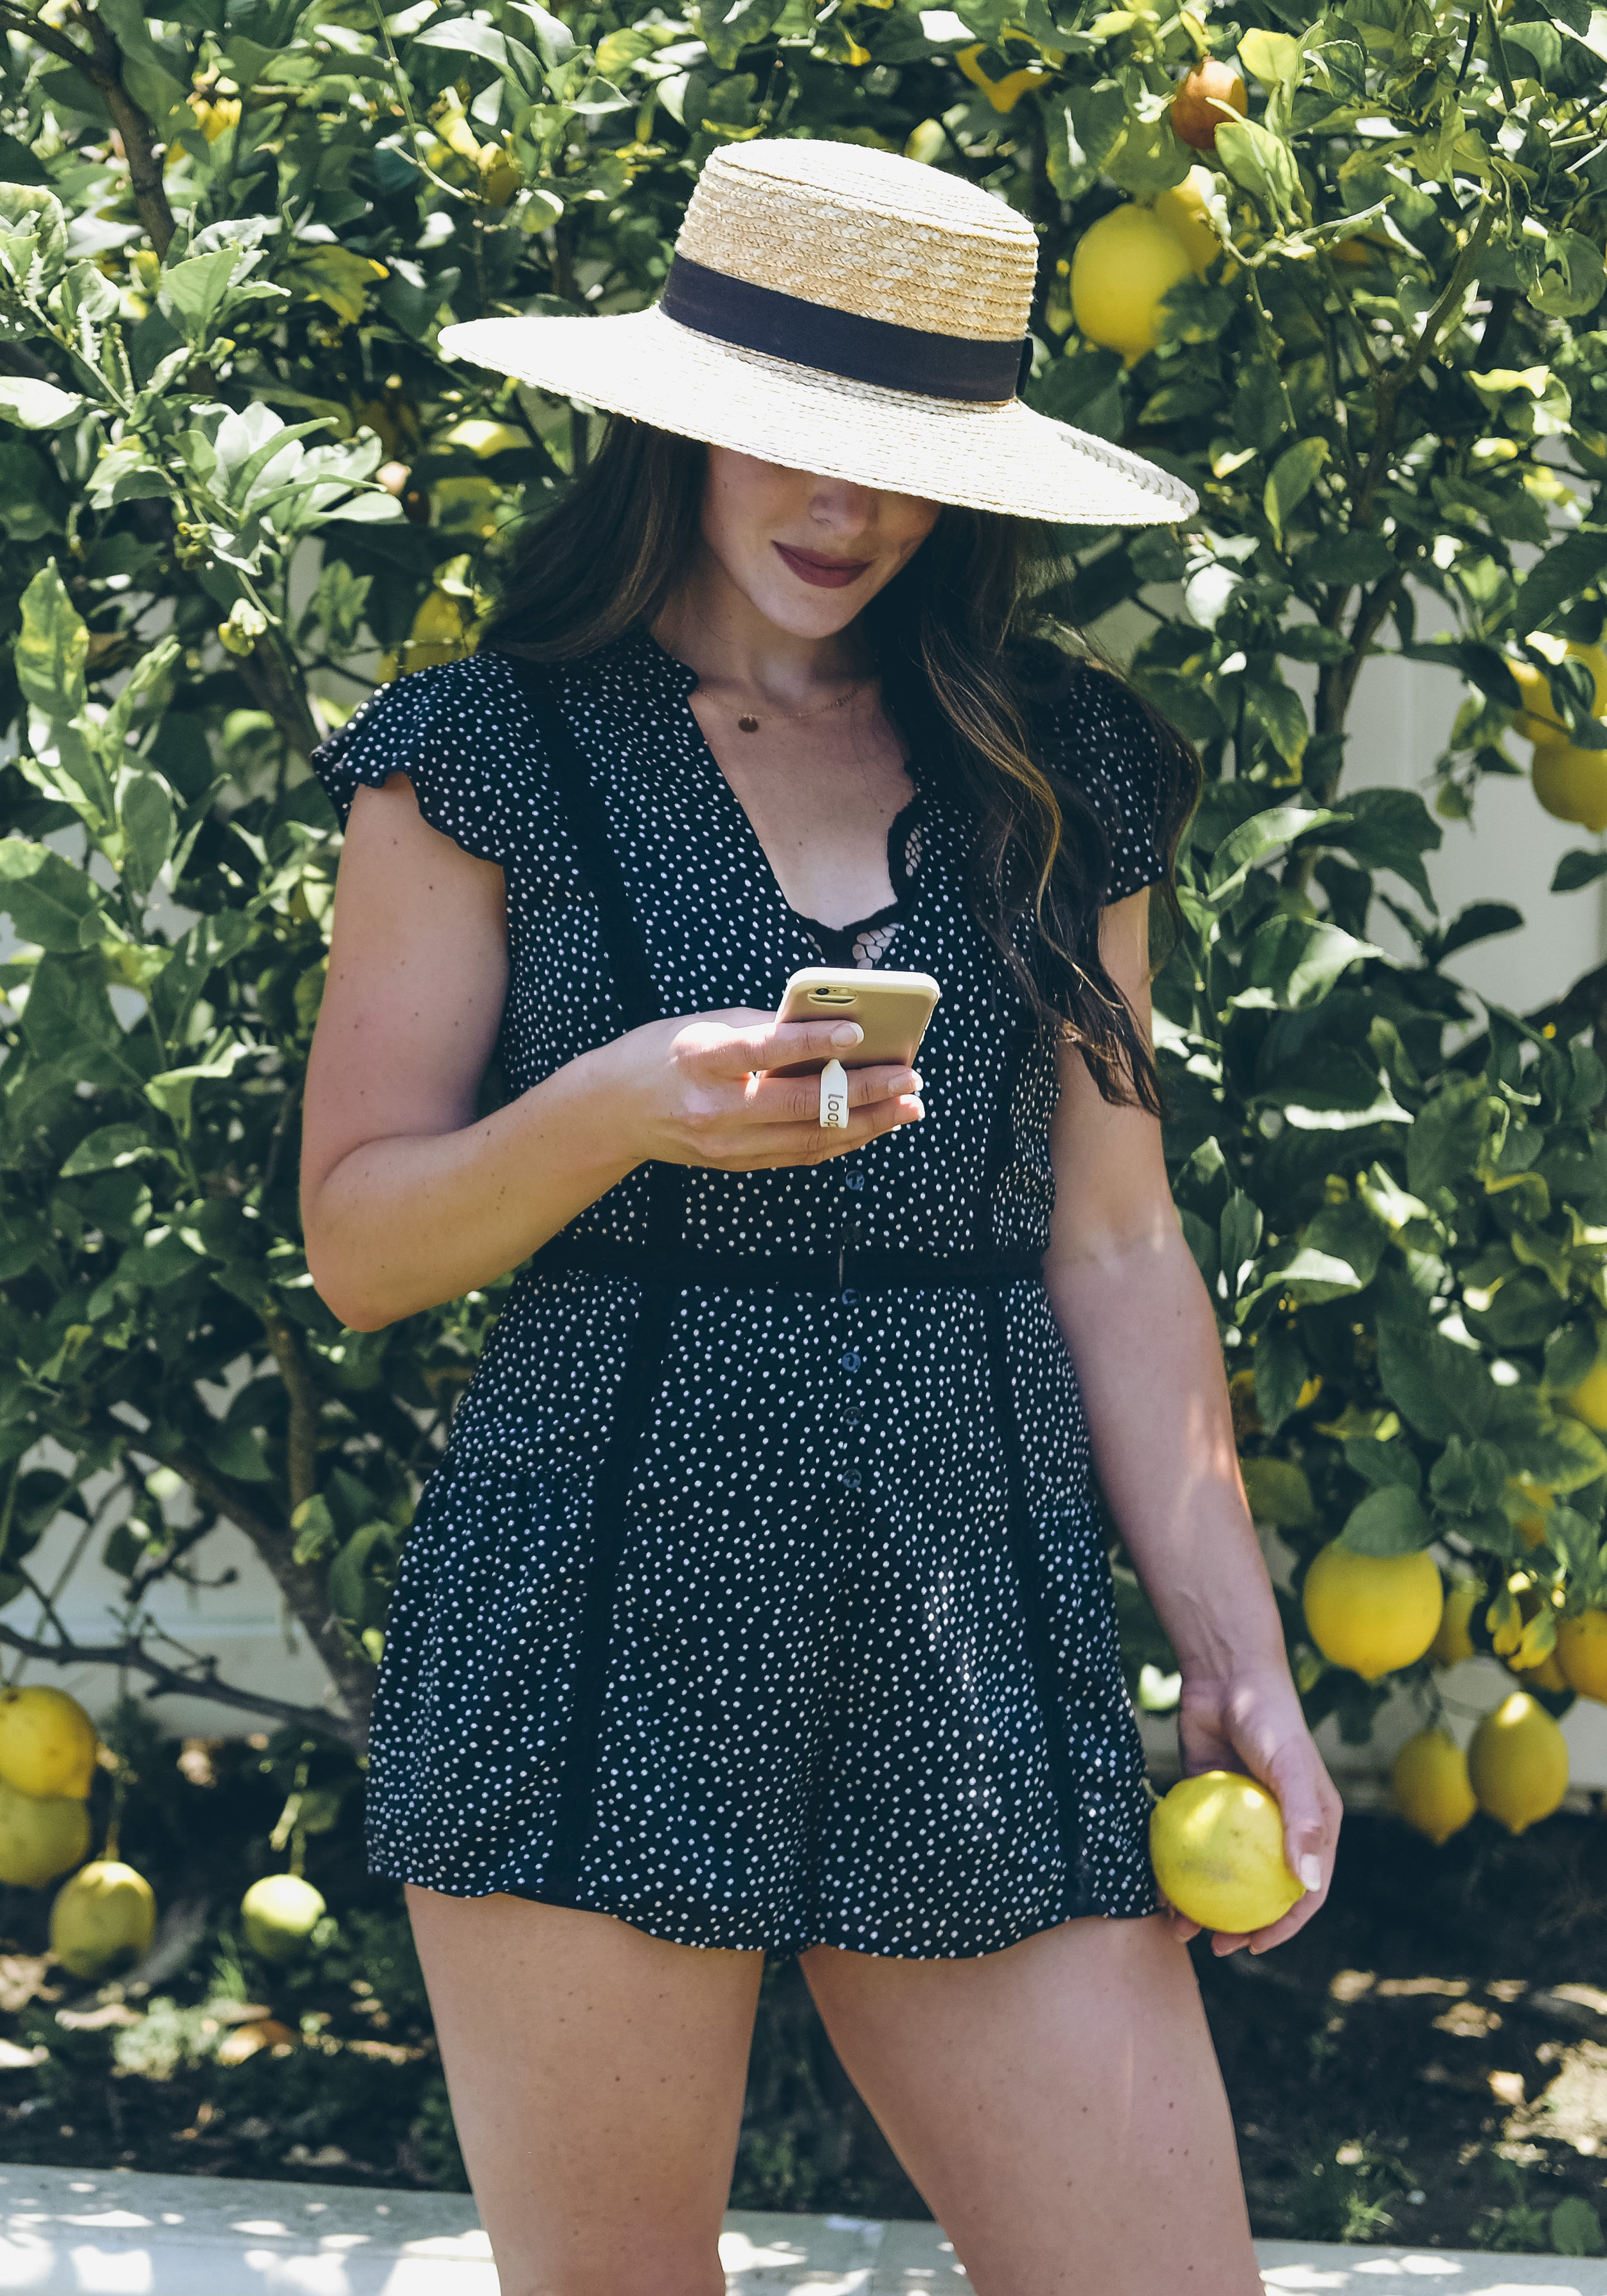 Affordable Summer Rompers, Amuse Society Violet Print Romper, Boater Hat Outfit.